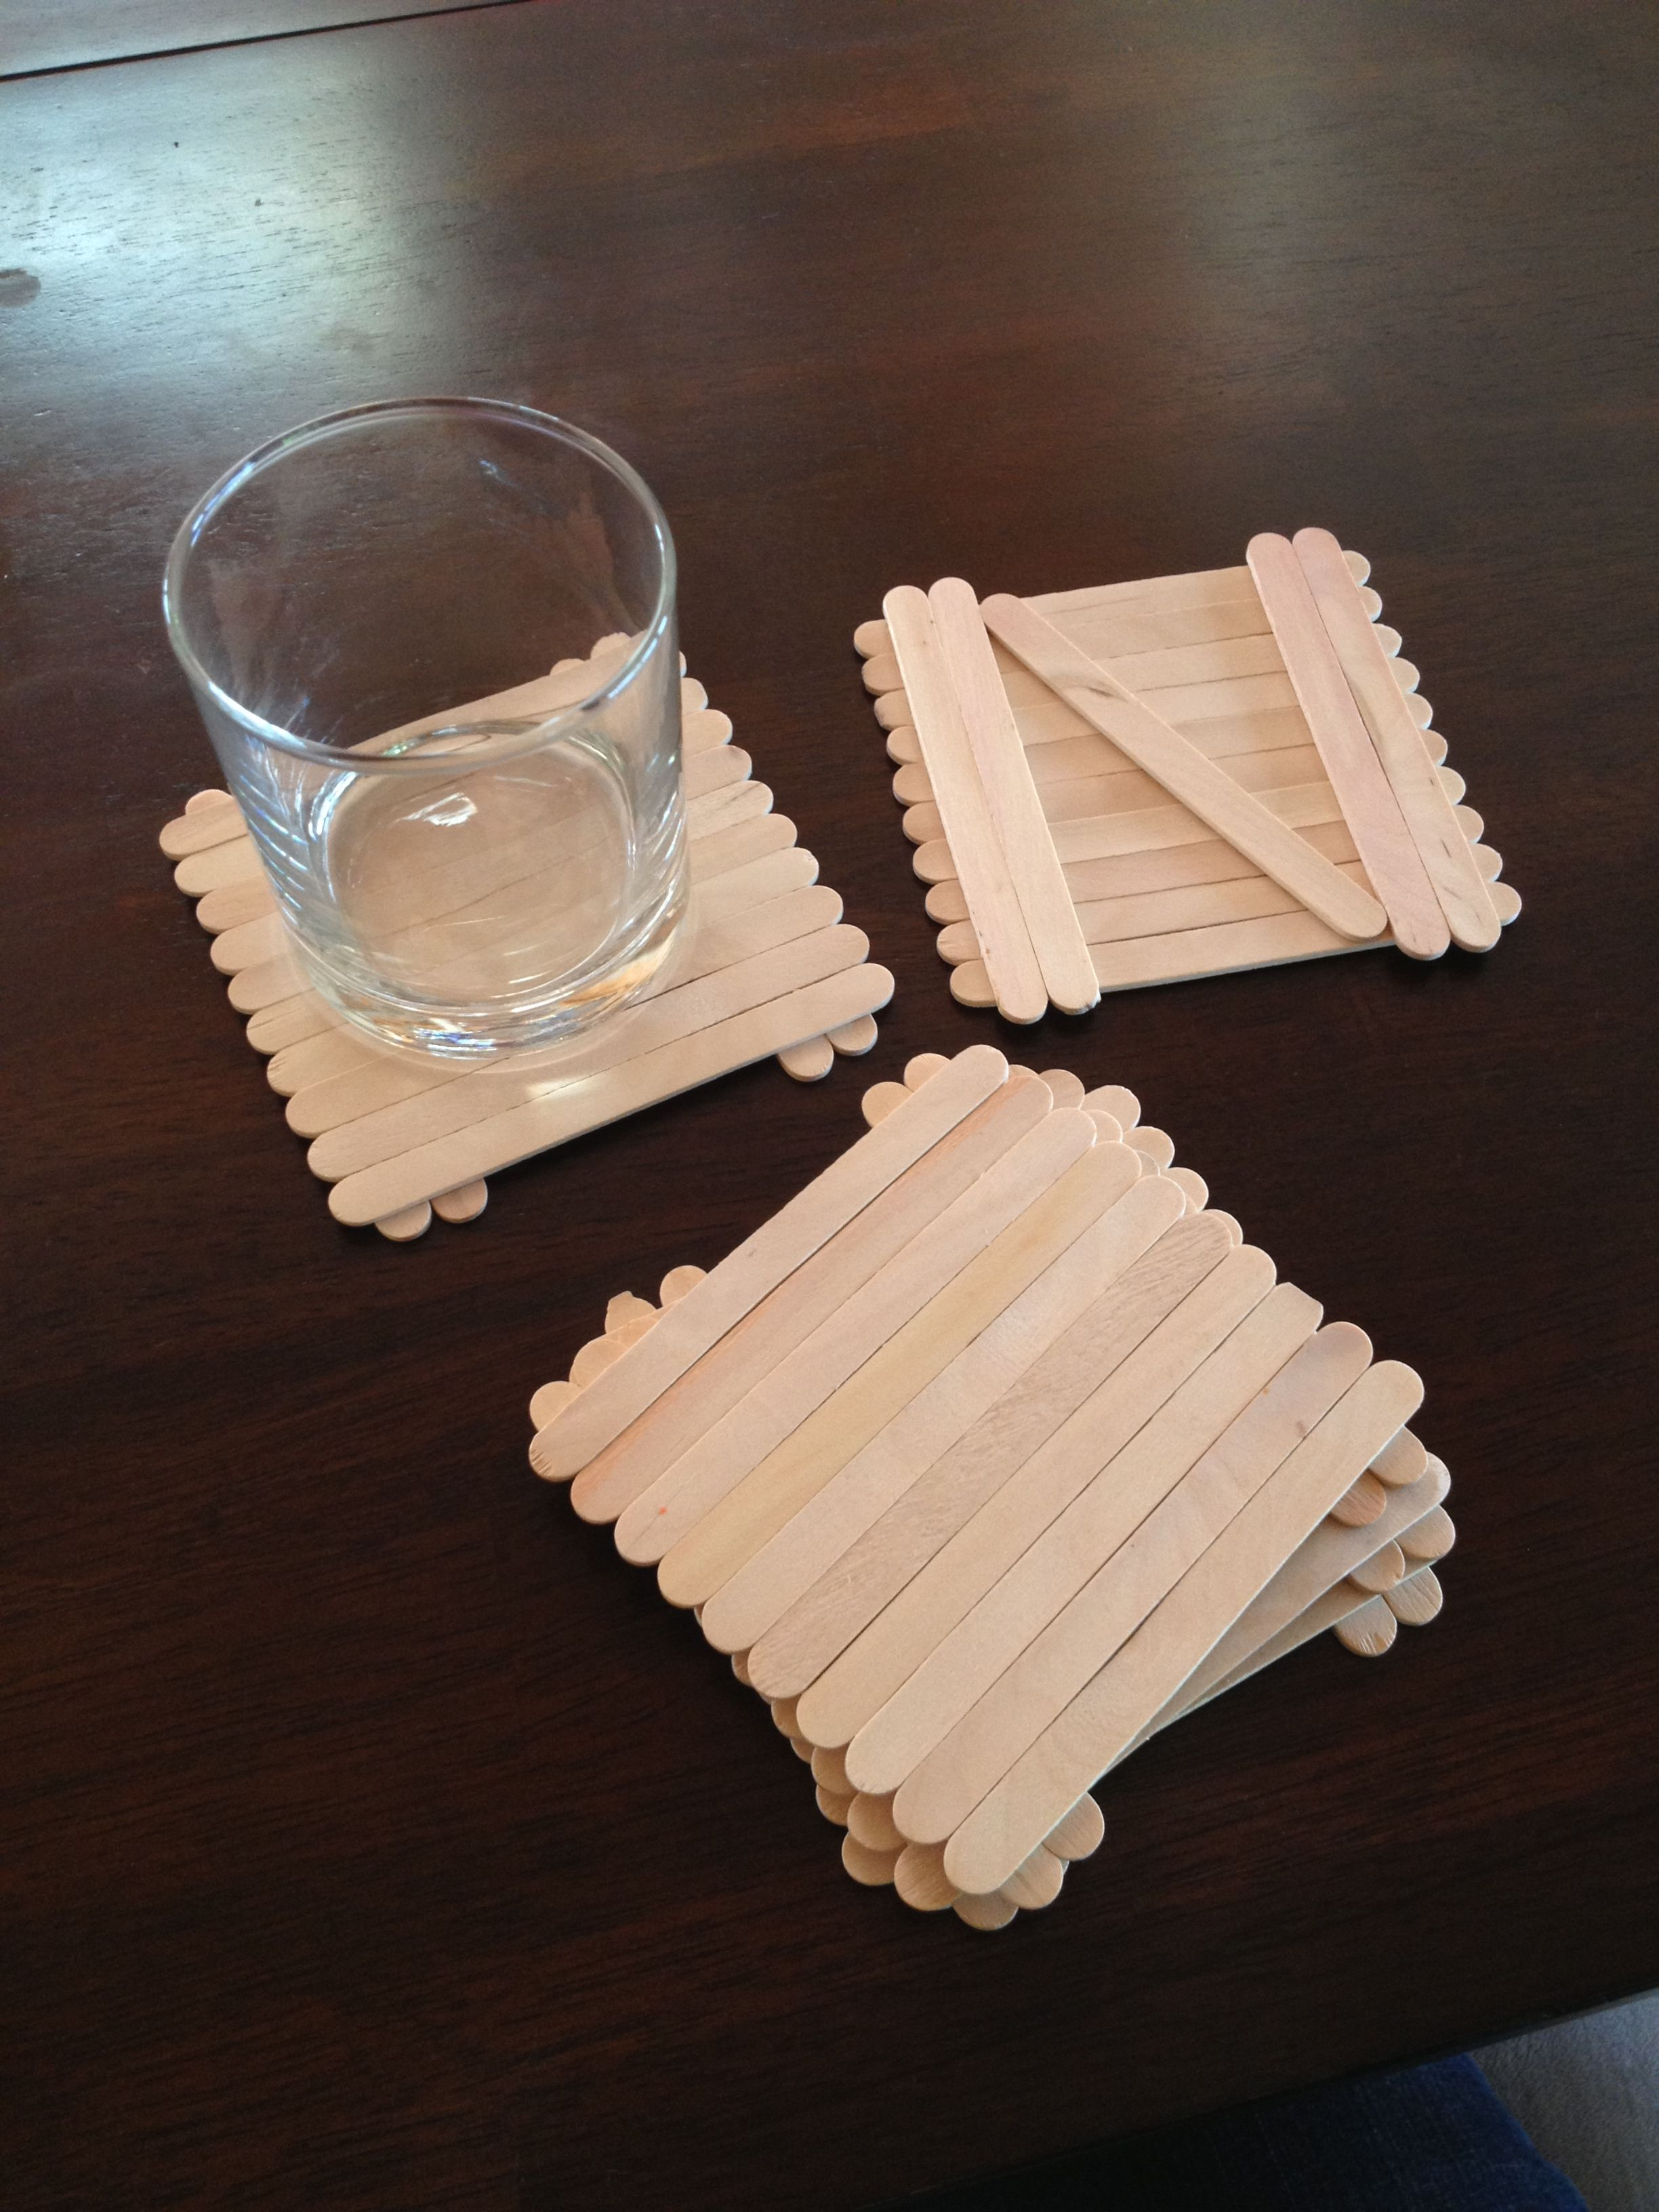 Popsicle stick coasters All you need for 1 coaster 15 popsicle